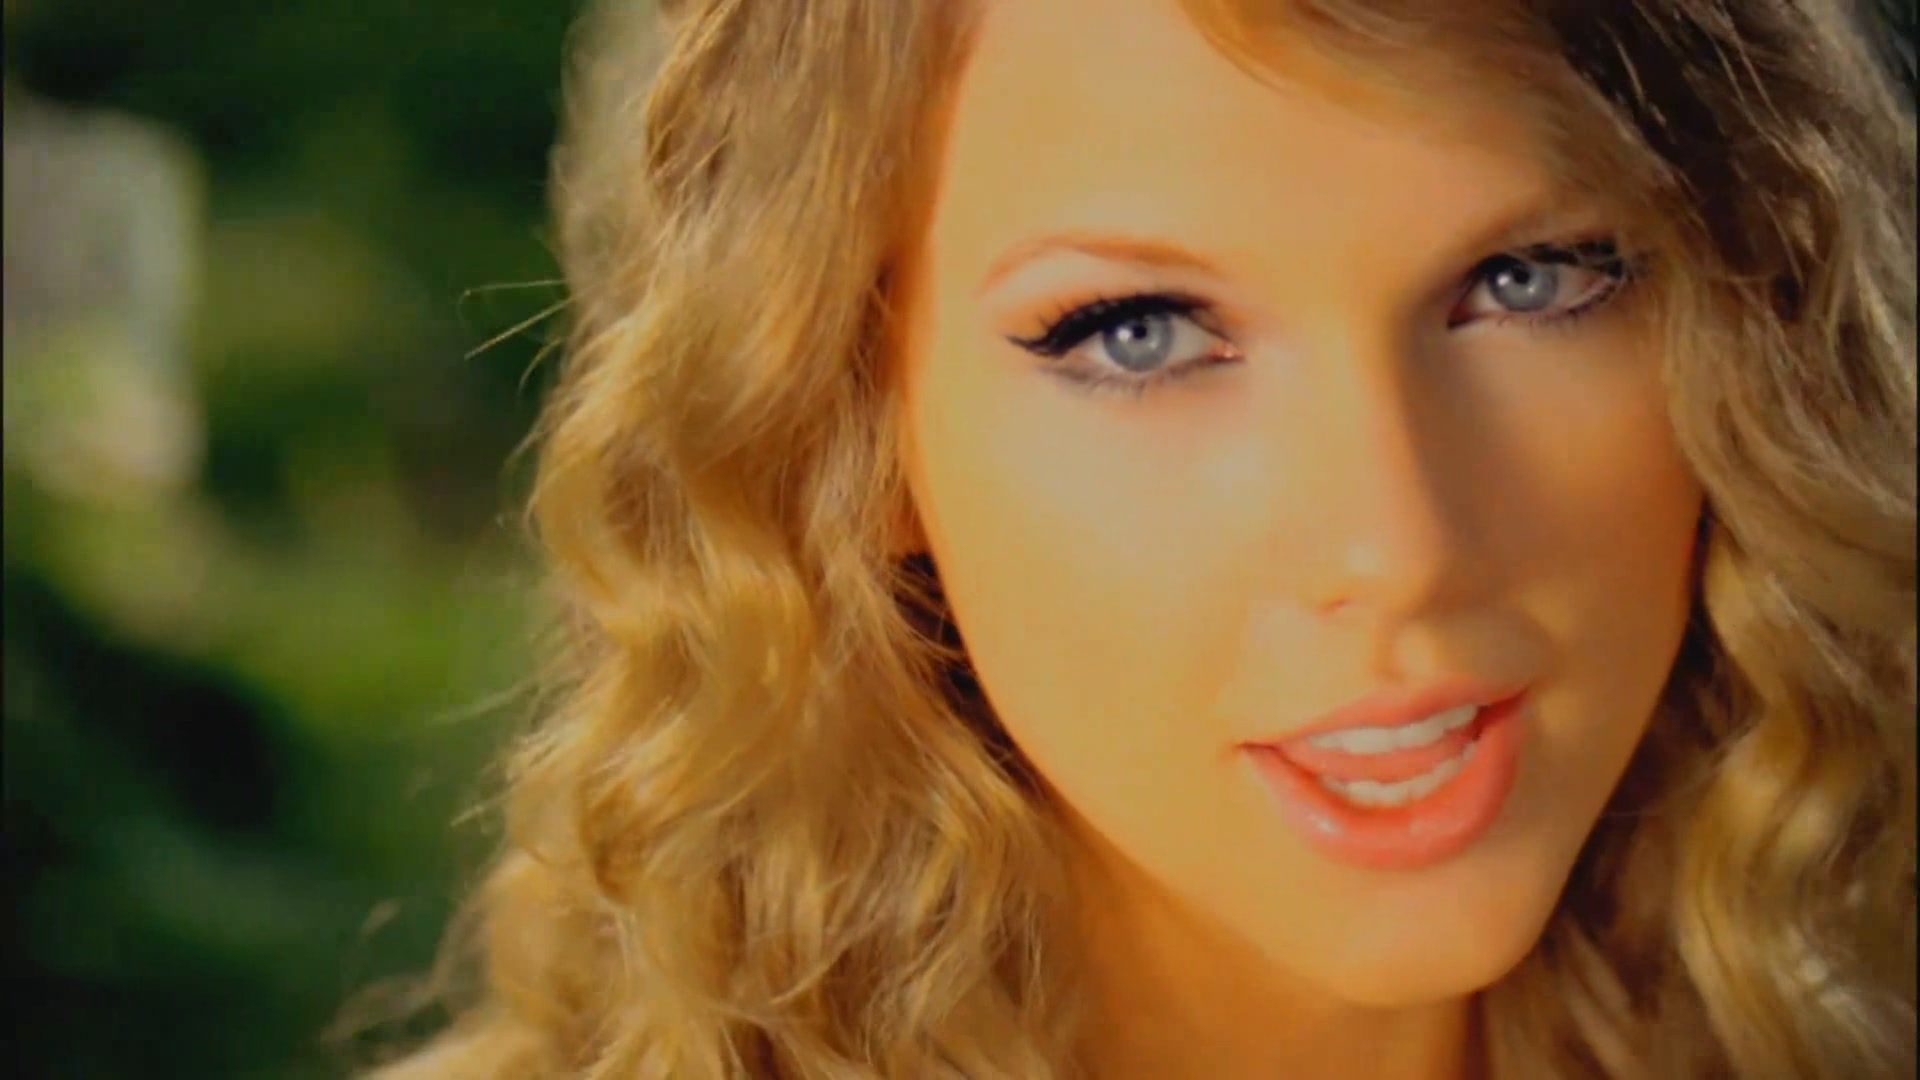 Taylor Swift - Mine [Music Video] - Taylor Swift Image ...